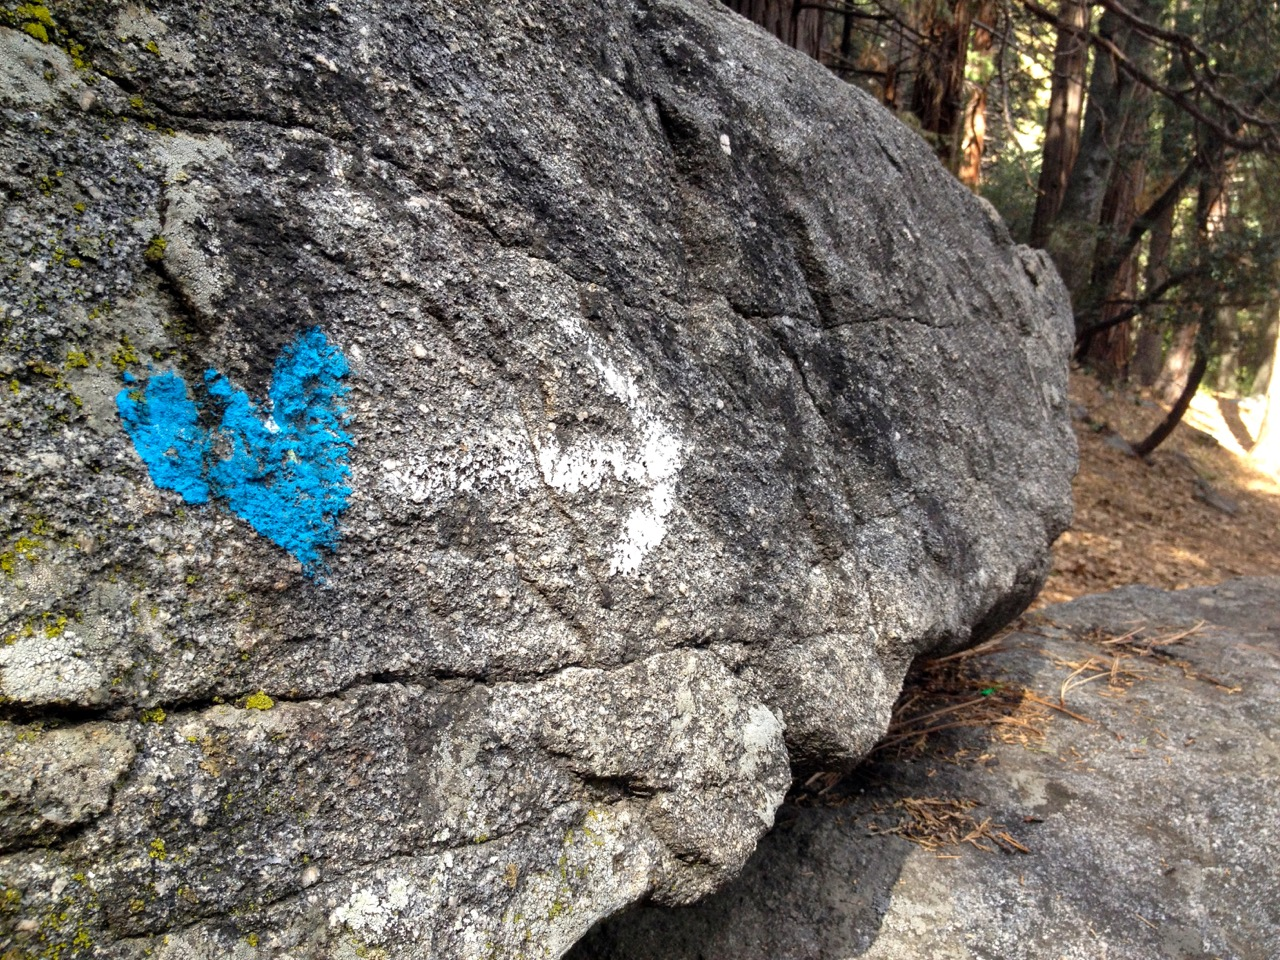 Heart Rock Trail – Crestline, California